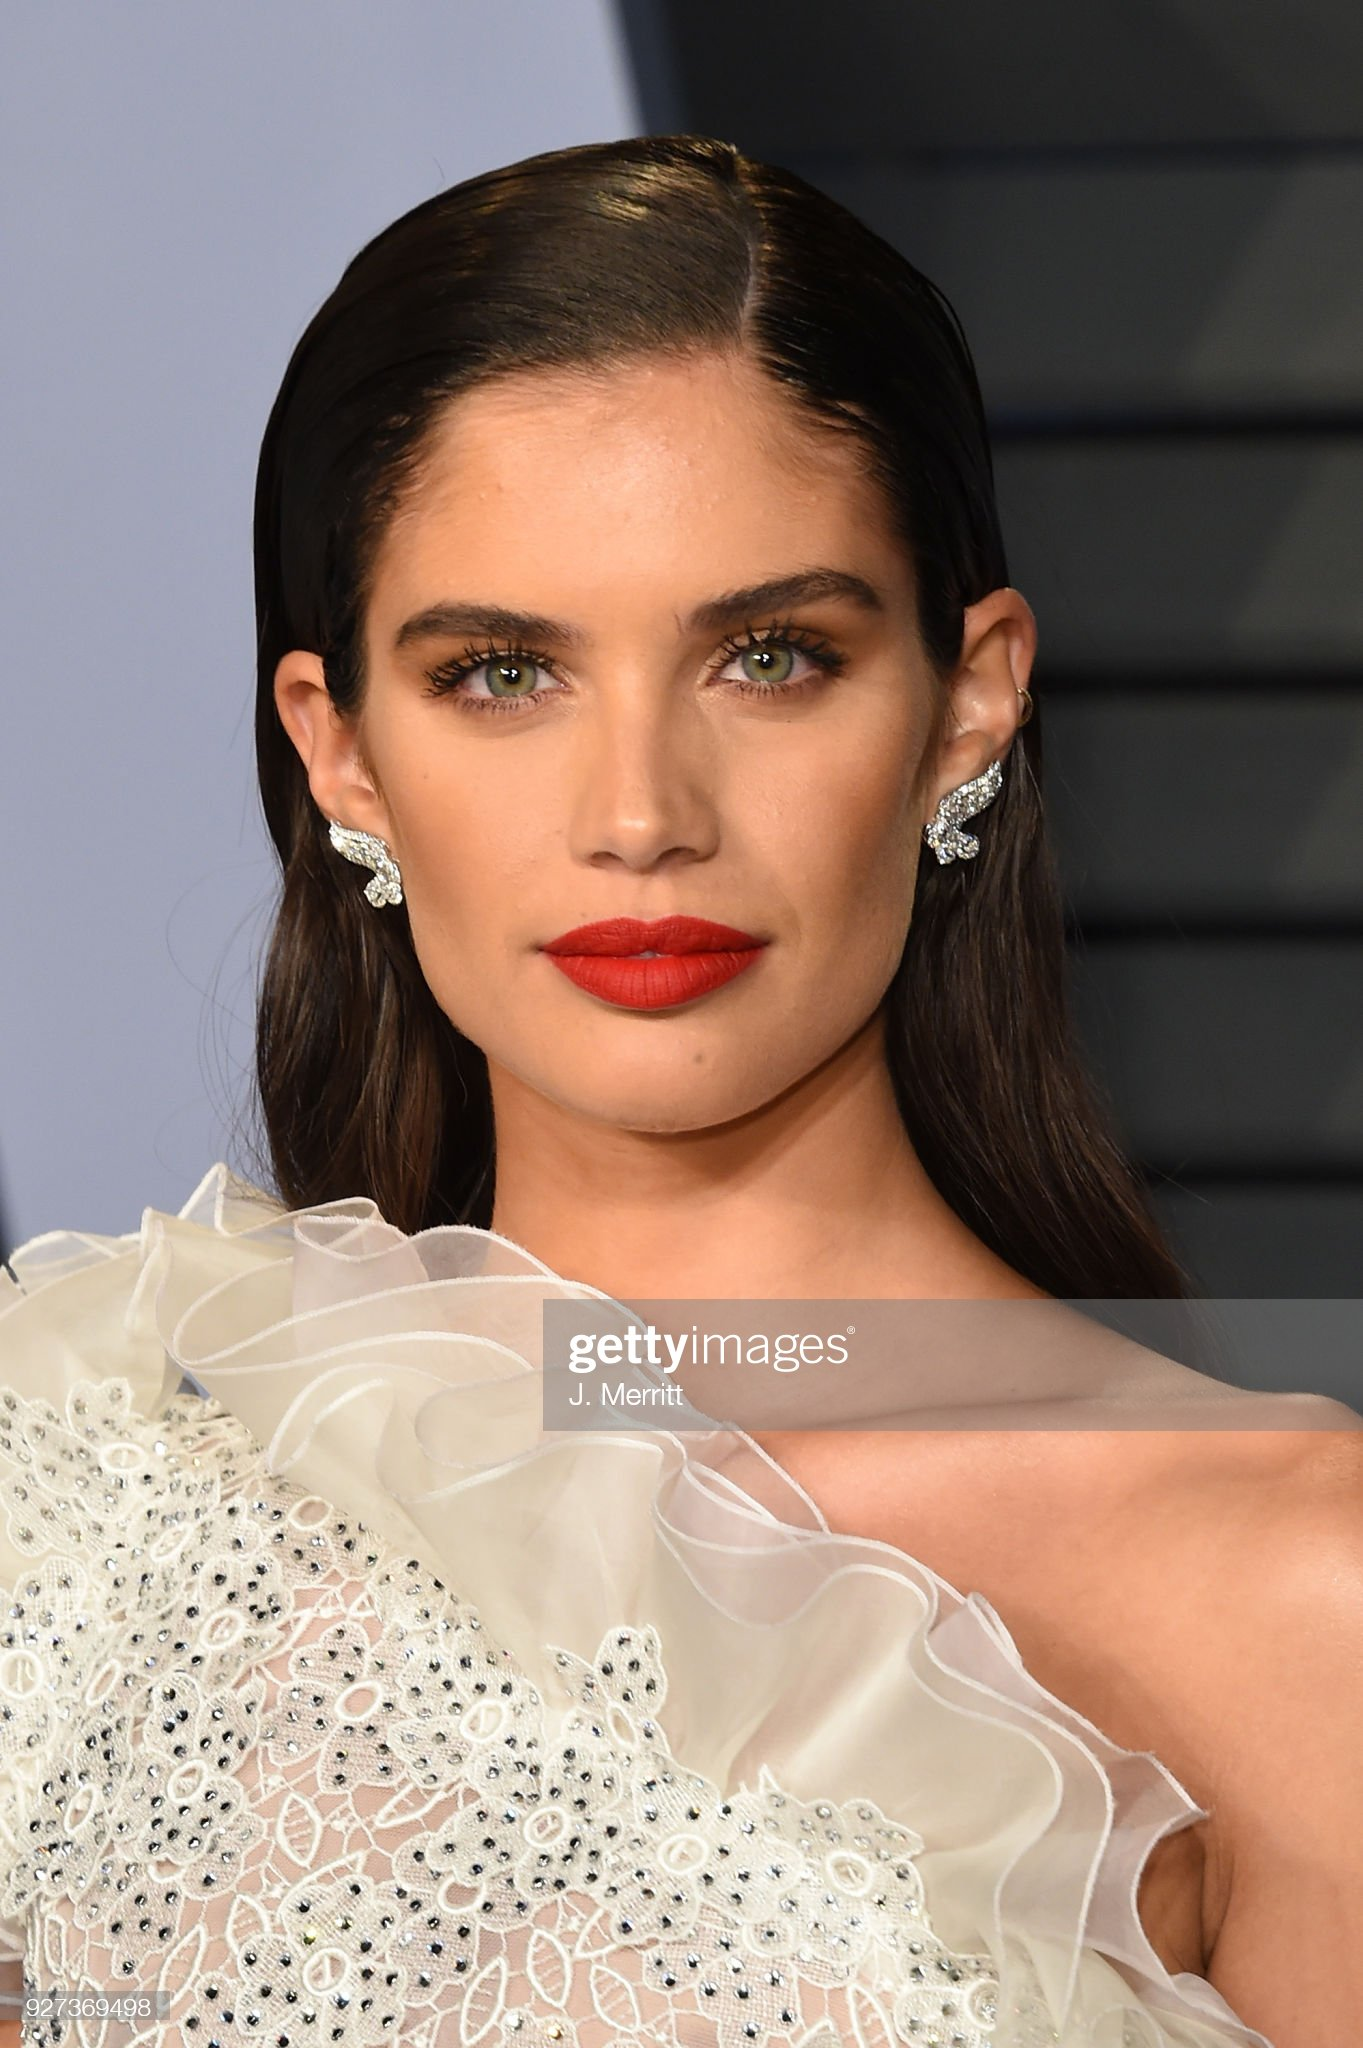 Ojos verdes - Famosas y famosos con los ojos de color VERDE Sara-sampaio-attends-the-2018-vanity-fair-oscar-party-hosted-by-at-picture-id927369498?s=2048x2048